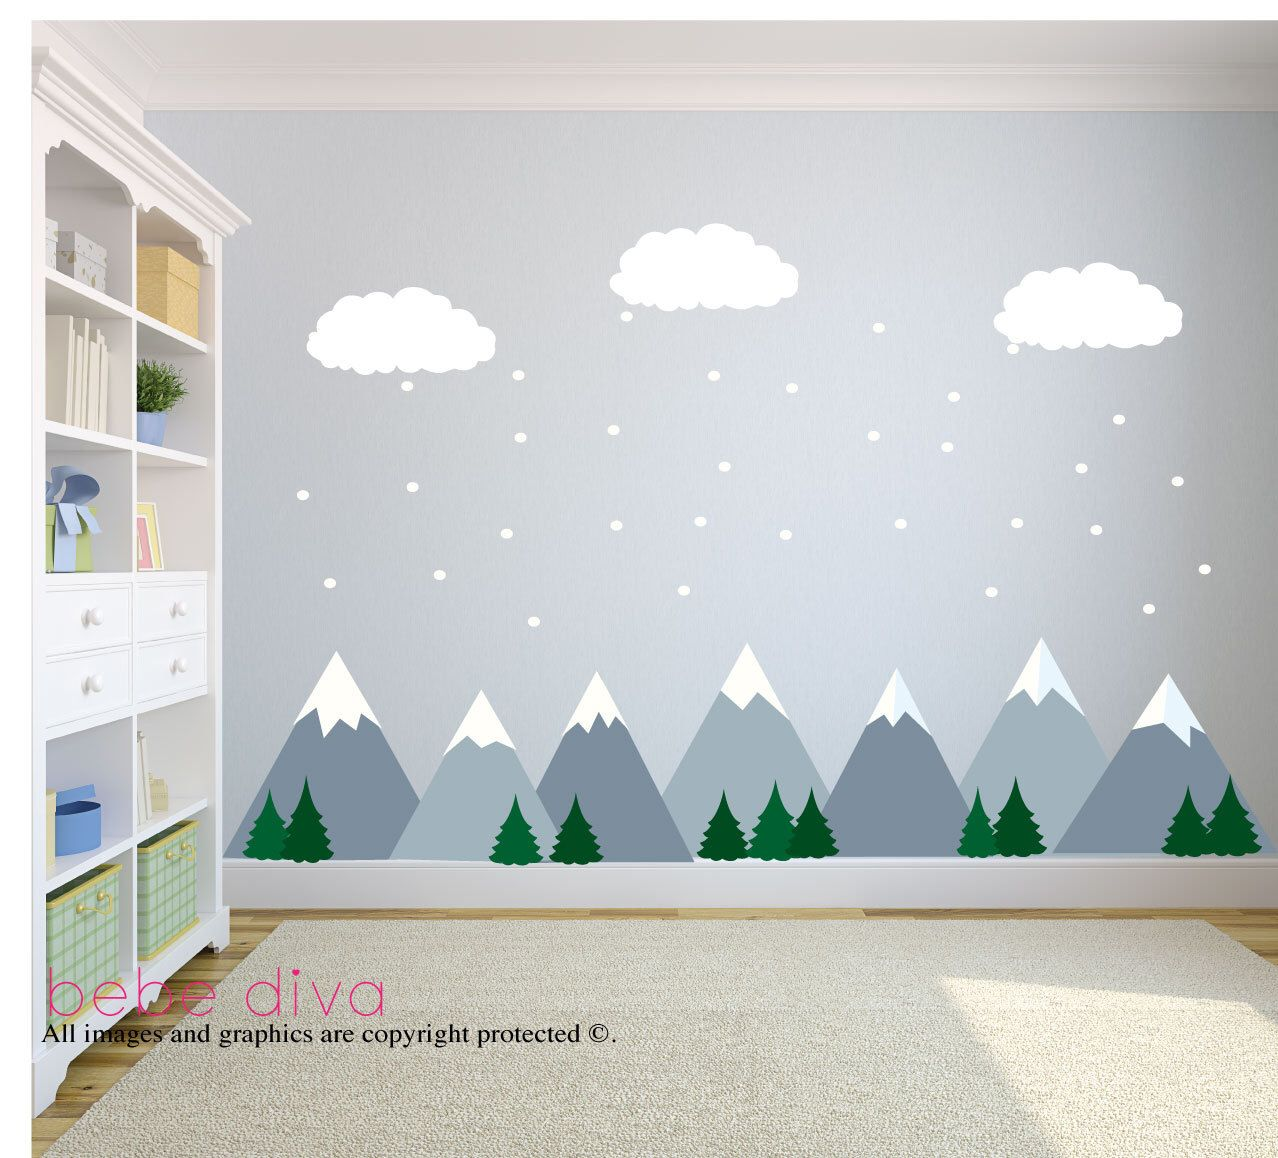 Wall decals for children, mountain wall decals, nursery wall decals, baby wall decals, children wall decals, UZFJUOL